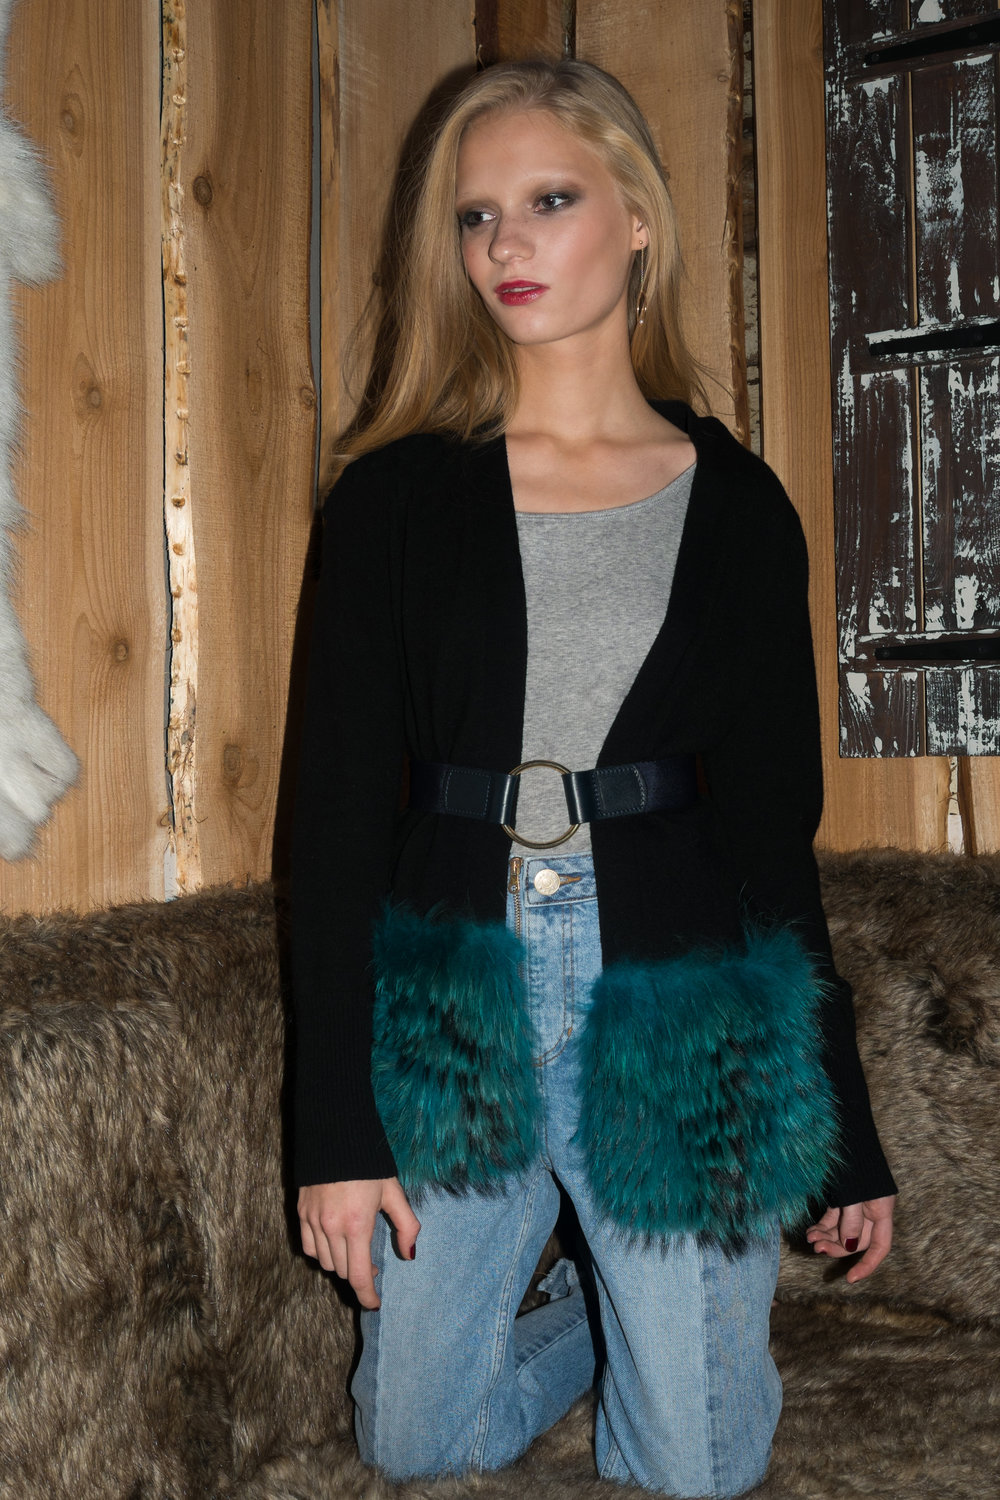 Black Cardigan with Turquoise Trim.jpg